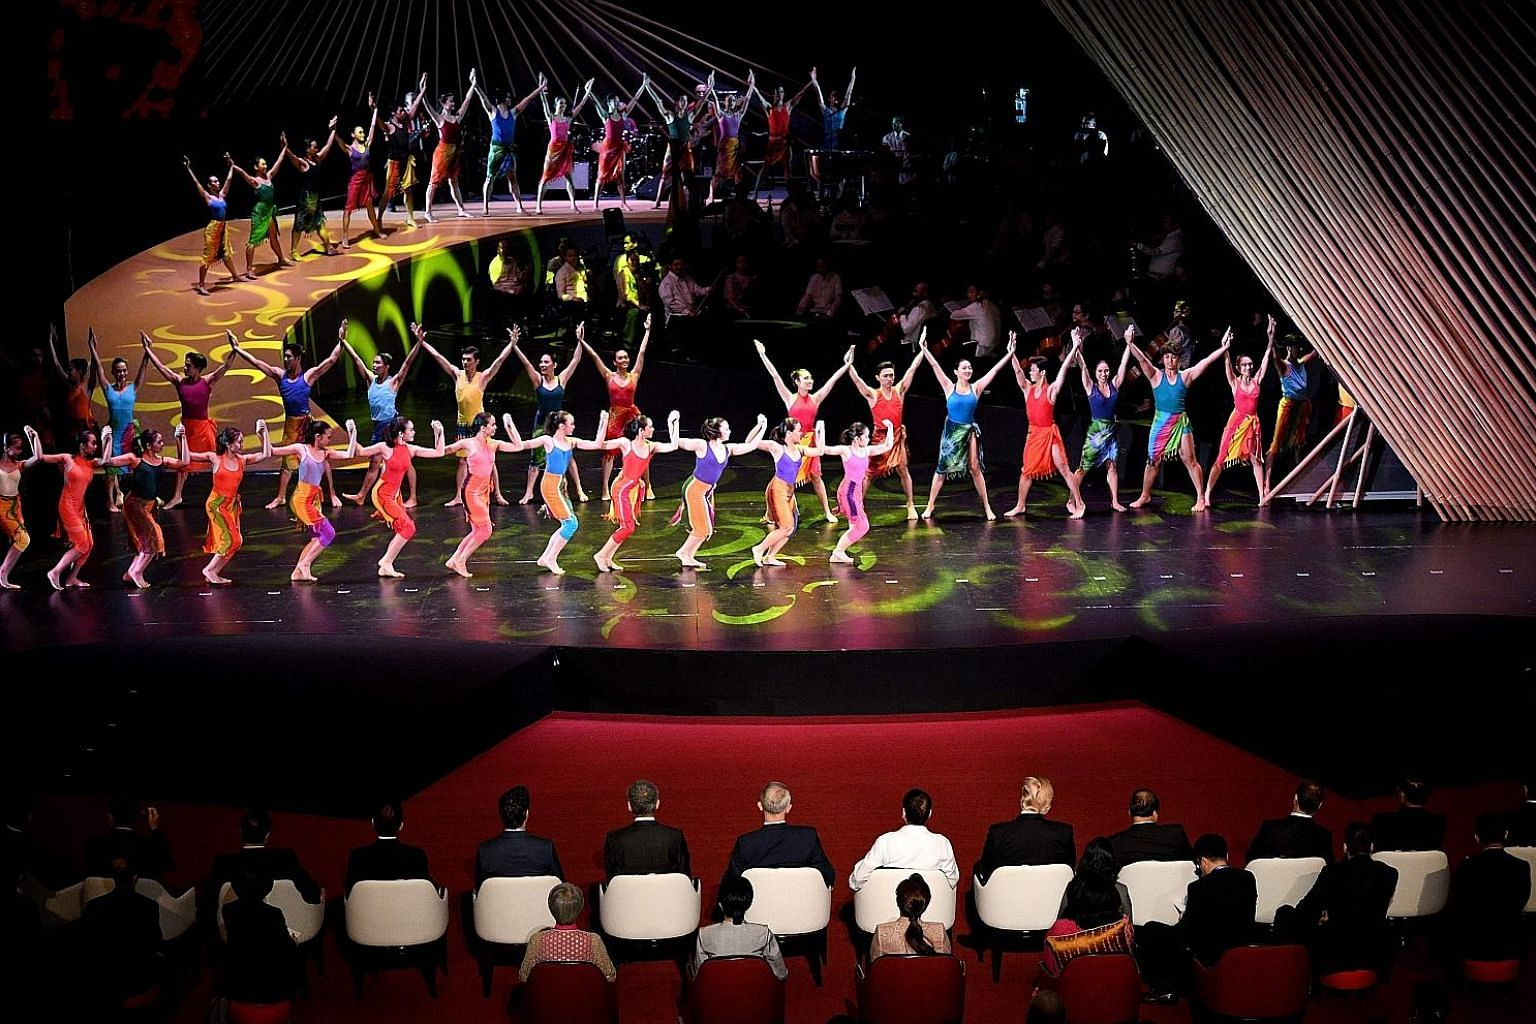 A ballet performance at the opening ceremony of the 31st Asean Summit in Manila on Nov 13. By mobilising the notion of citizenship, South-east Asian citizens should be able to gain certain benefits meaningful to them, says the writer.